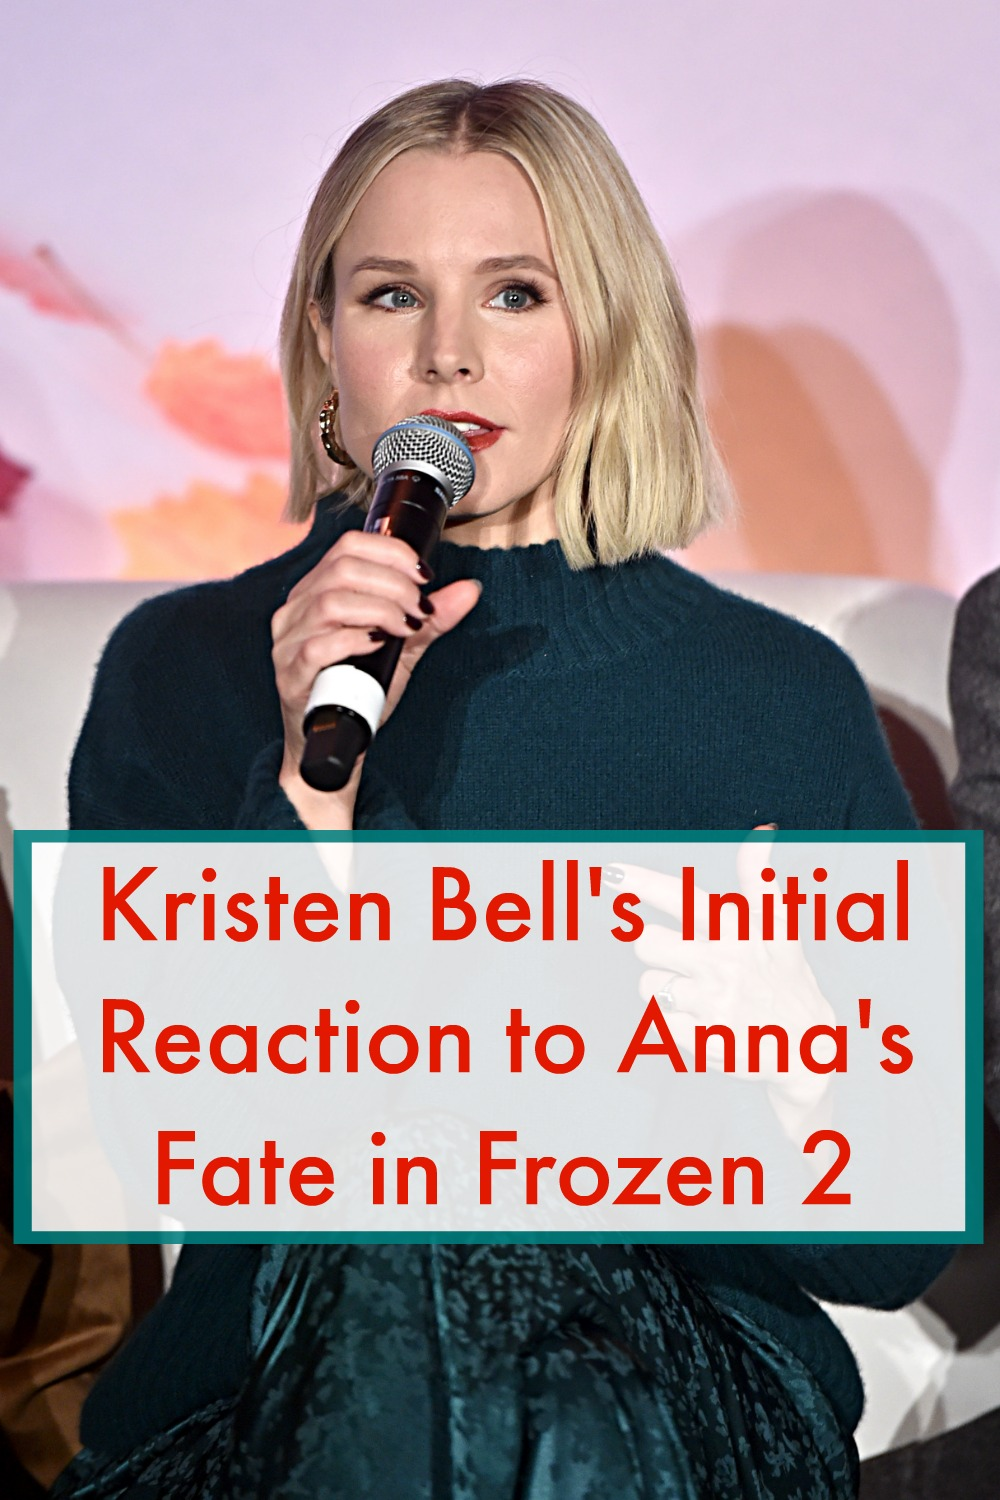 Kristen Bell Anna's Fate Frozen 2, Kristen Bell's initial reaction to Anna's fate, Is Anna Queen in Frozen 2? Frozen 2 Spoilers, #Frozen2